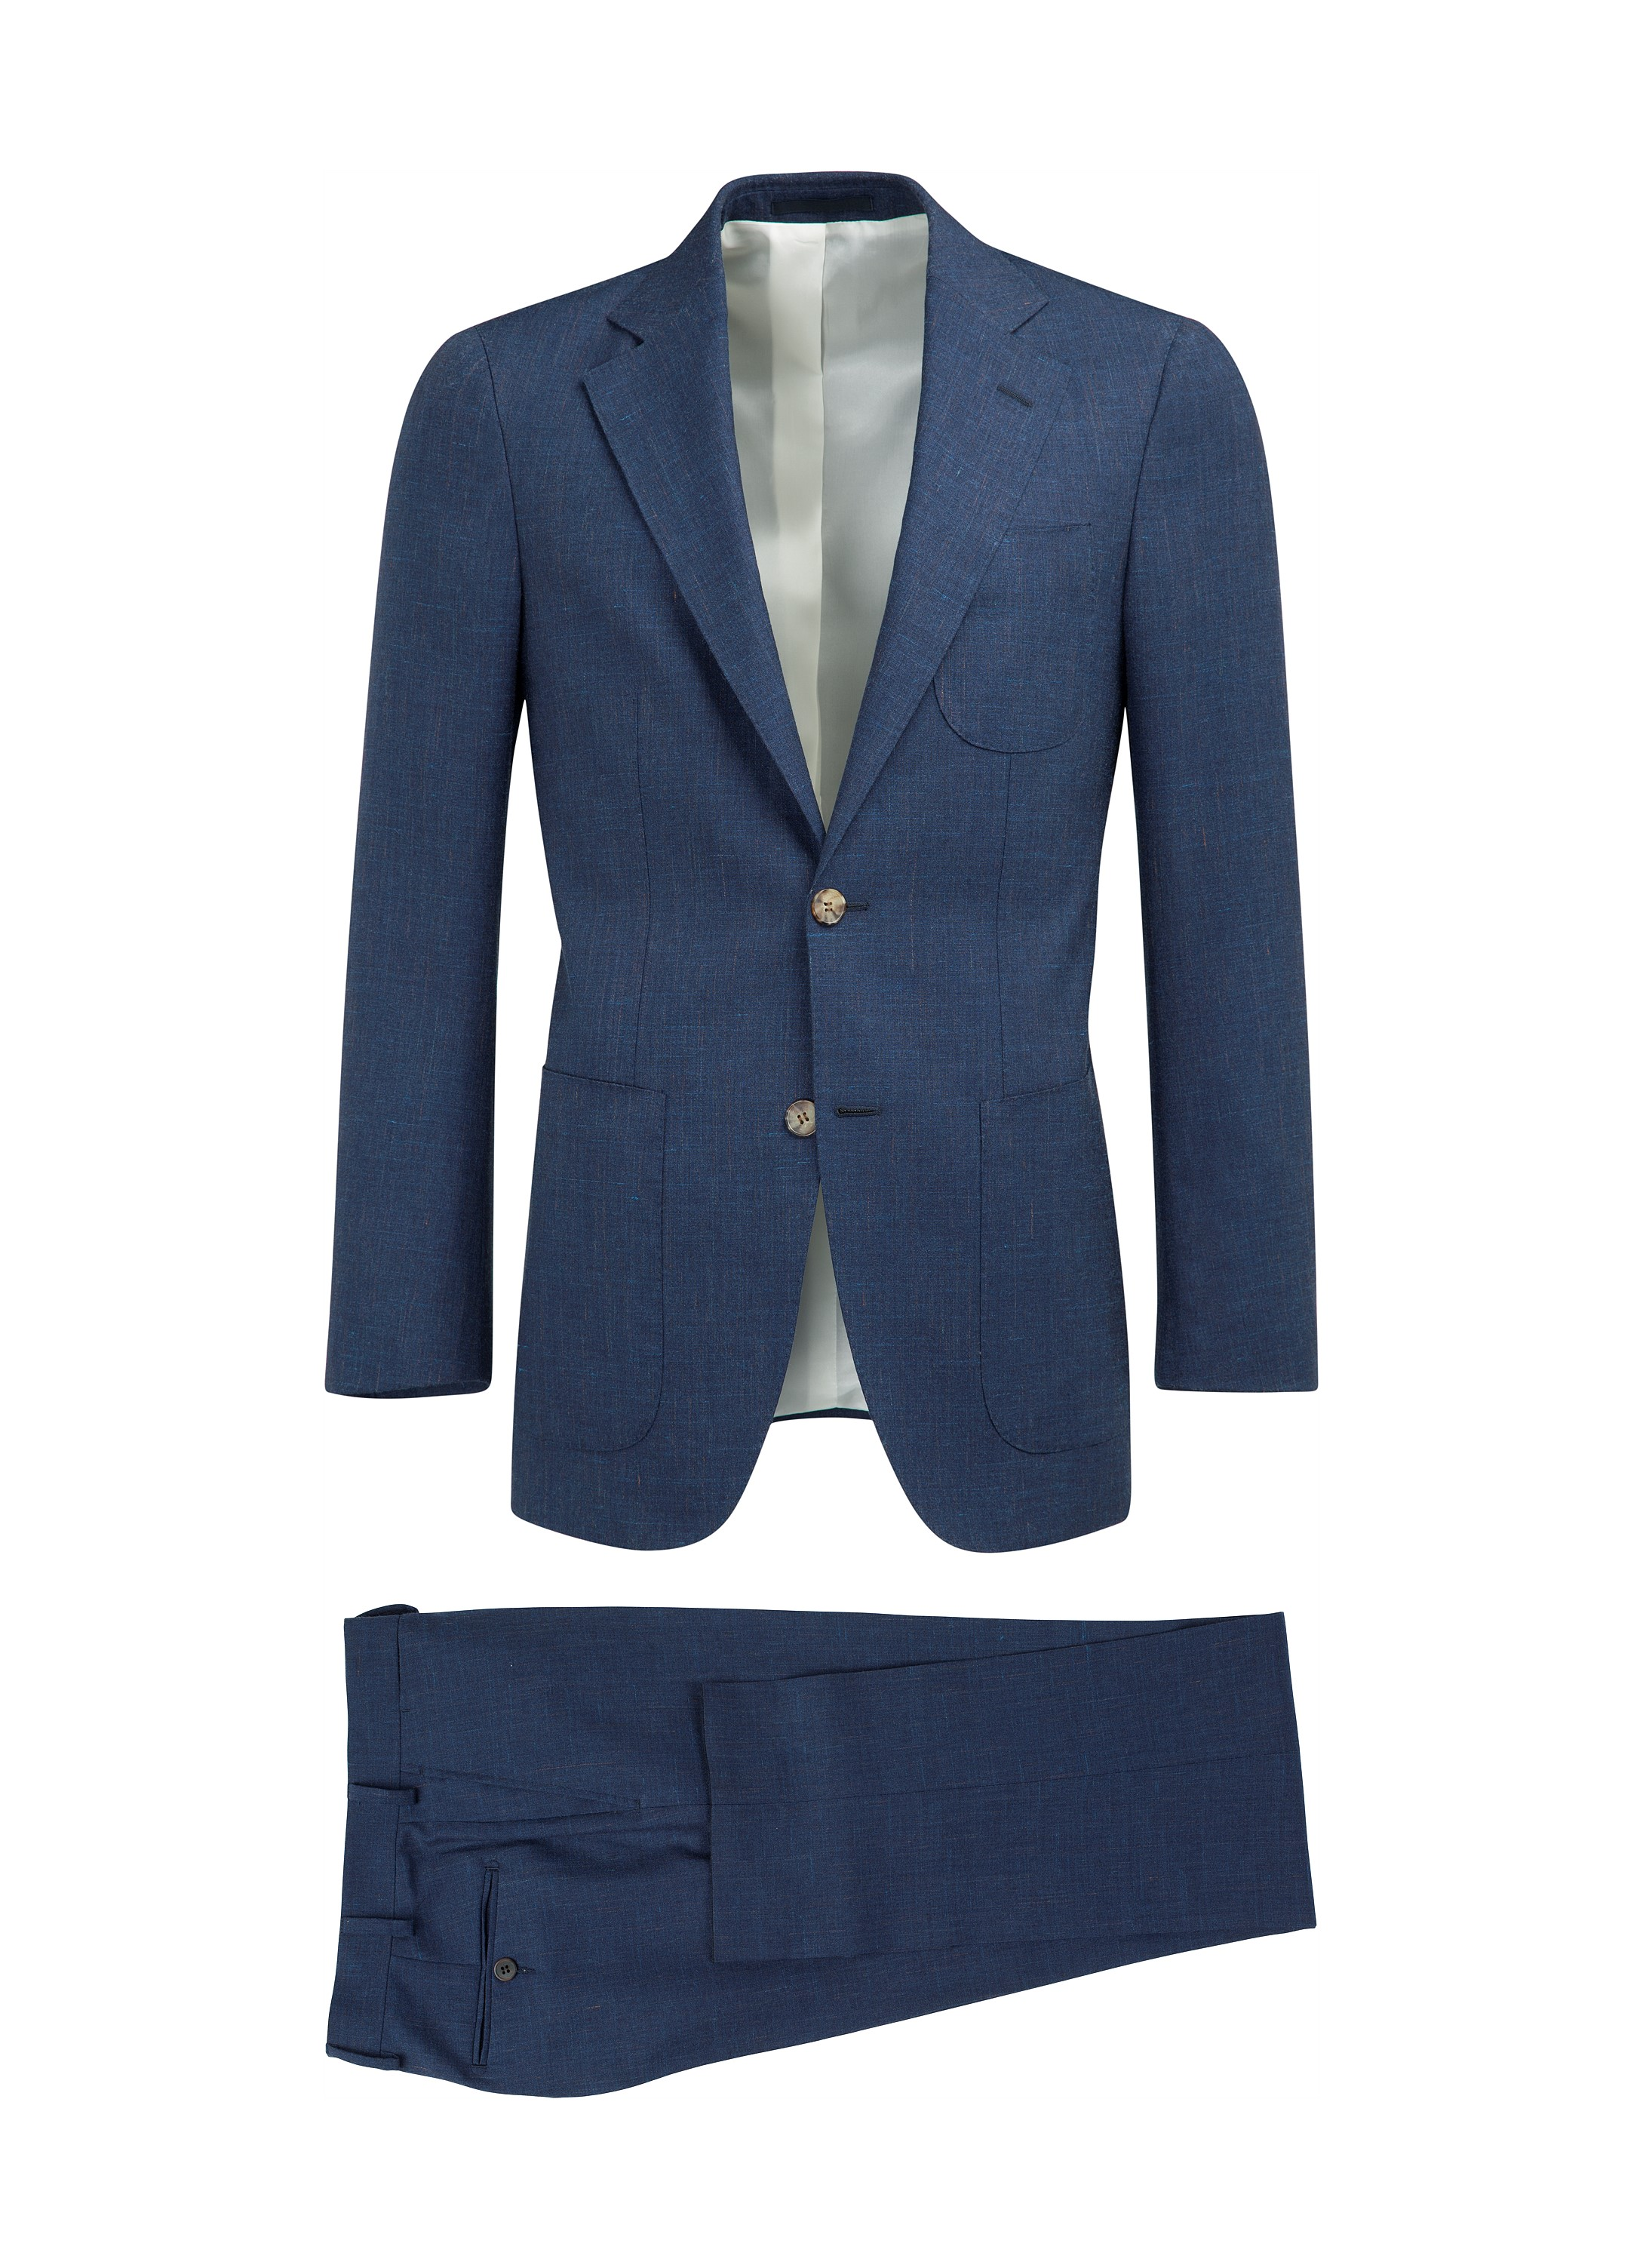 http://statics.suitsupply.com/images/products/Suits/zoom/Suits_Blue_Plain_Hudson_P4206_Suitsupply_Online_Store_5.jpg